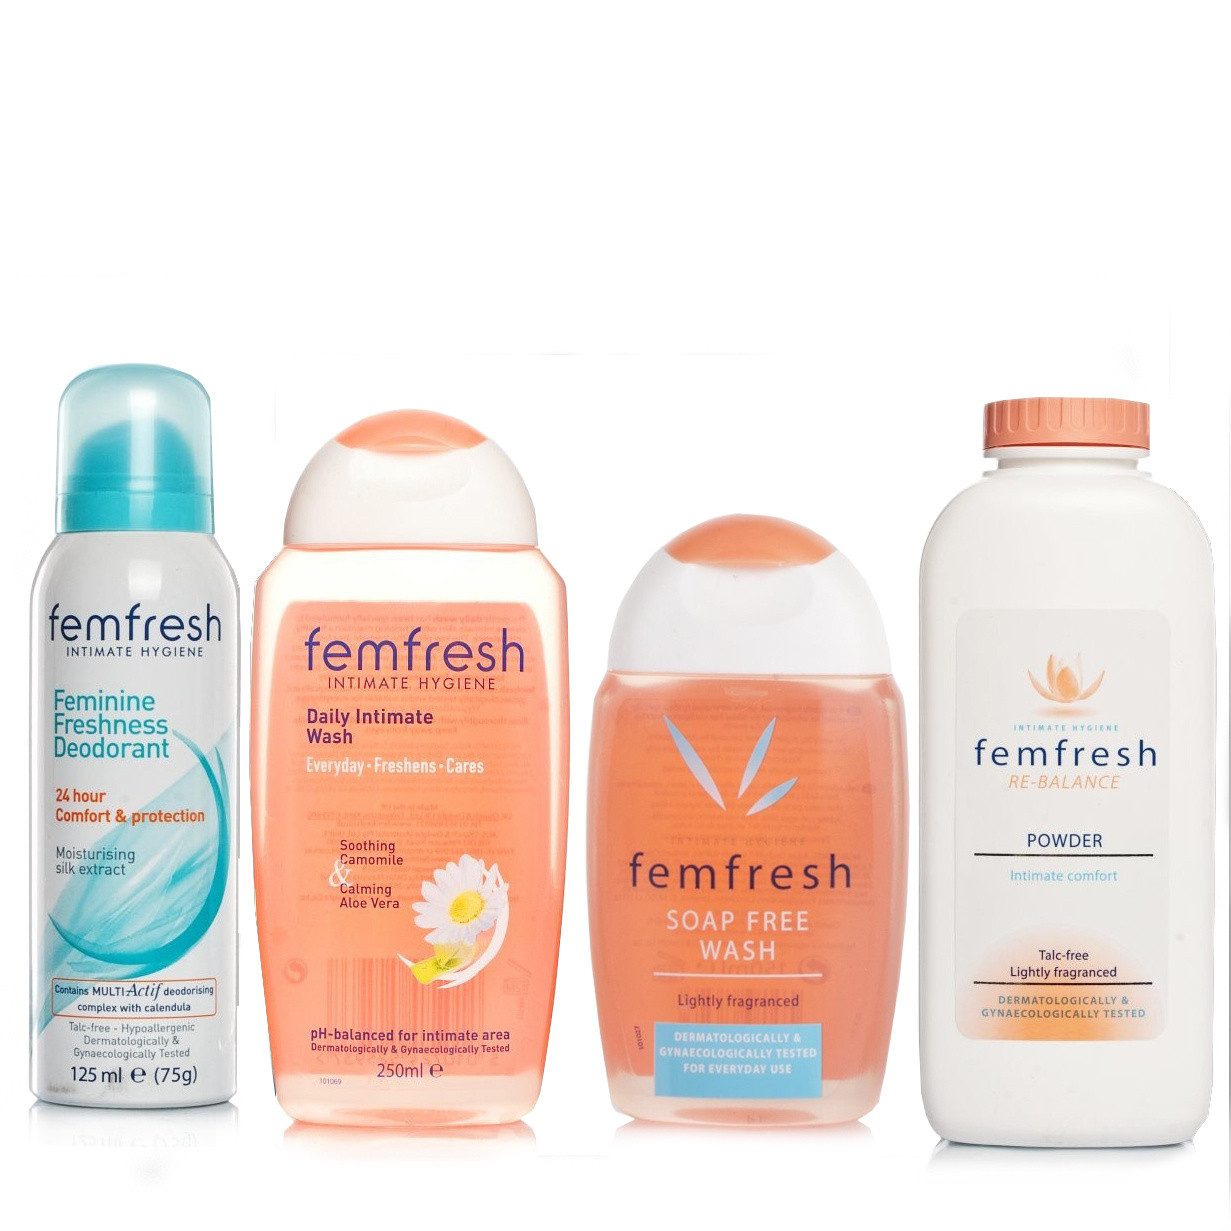 Femfresh Feminine Care Kit